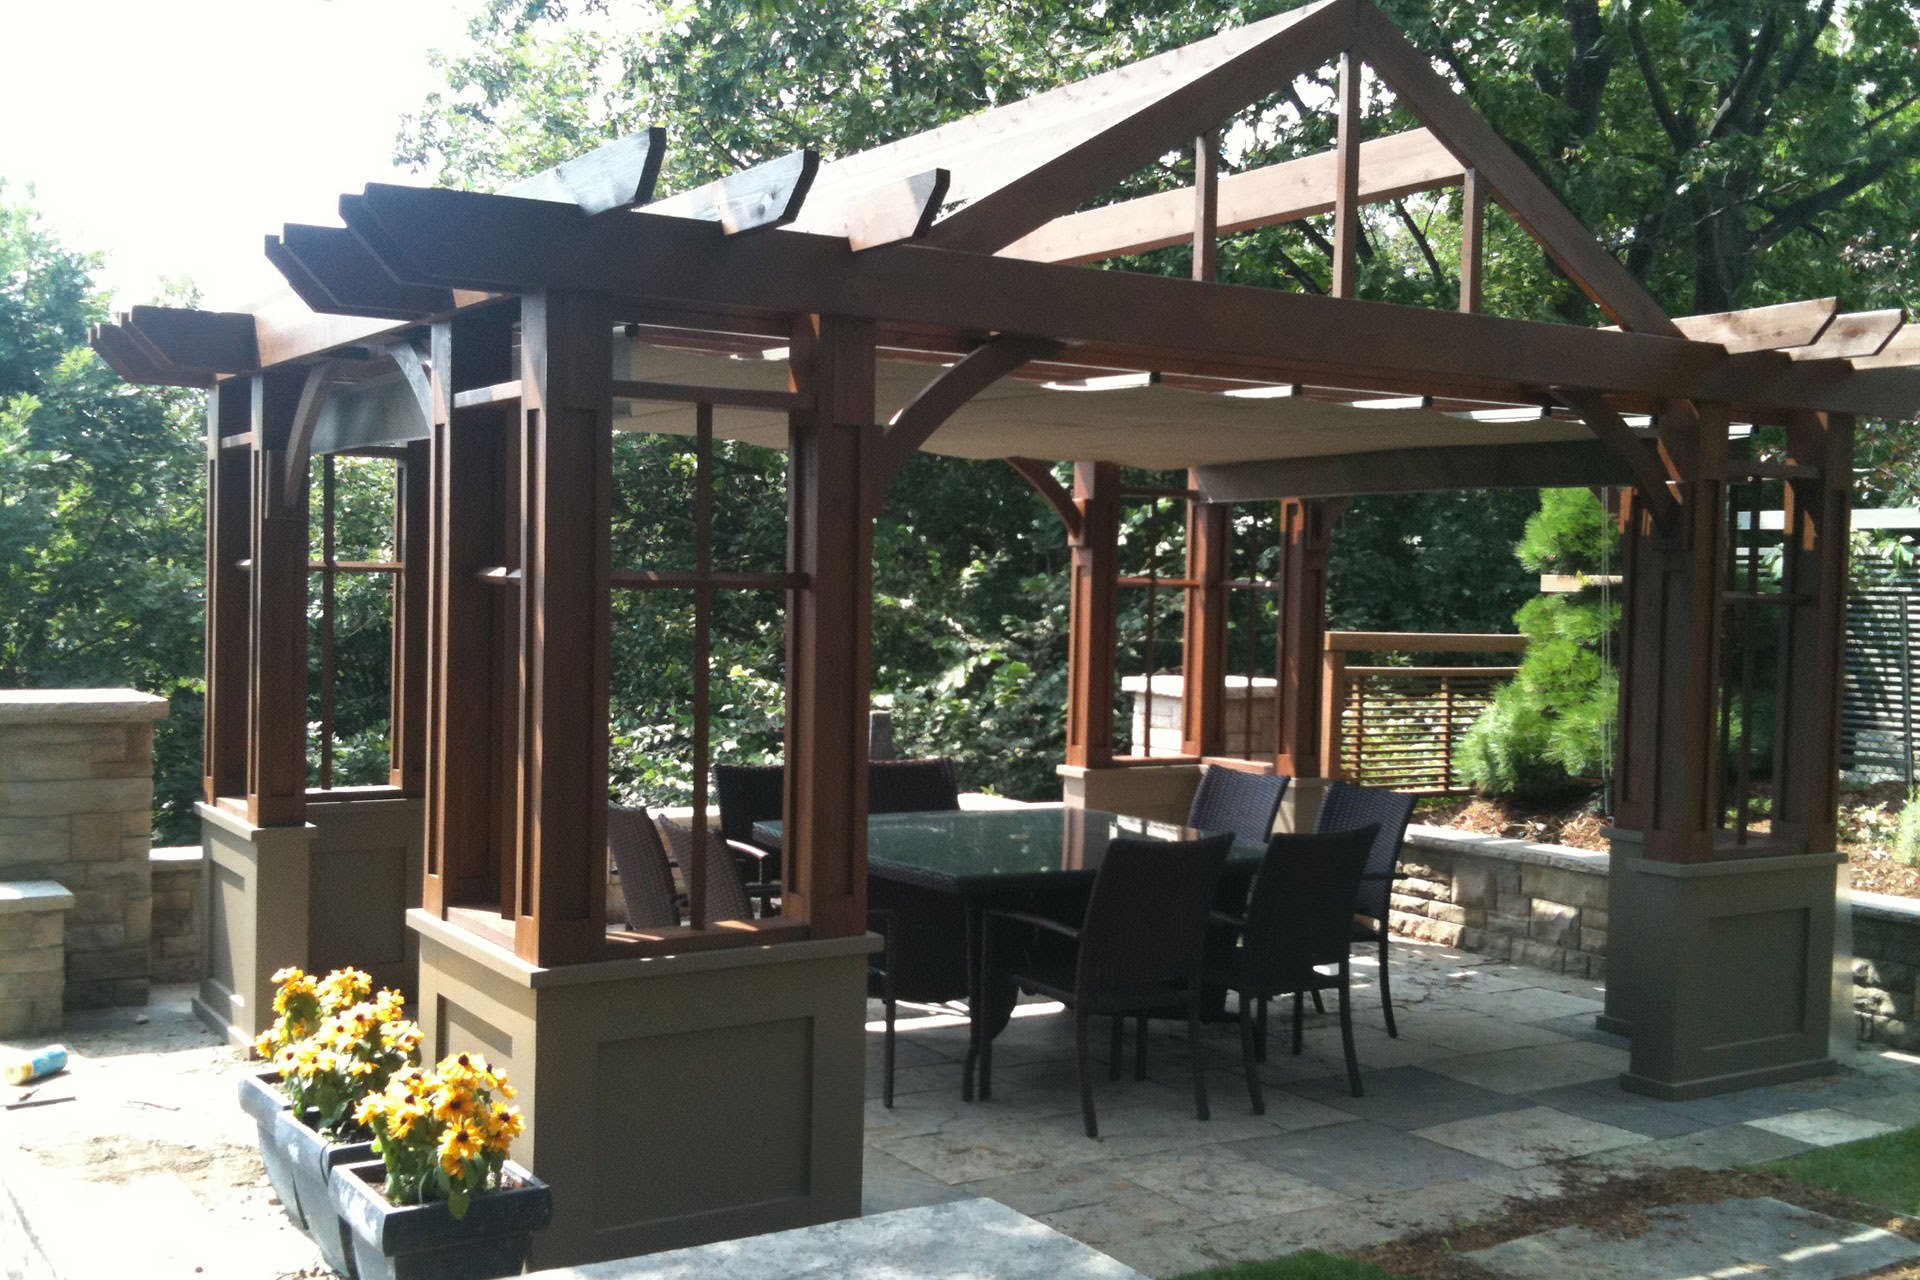 Pergola Plans: Where to Start and What to Consider